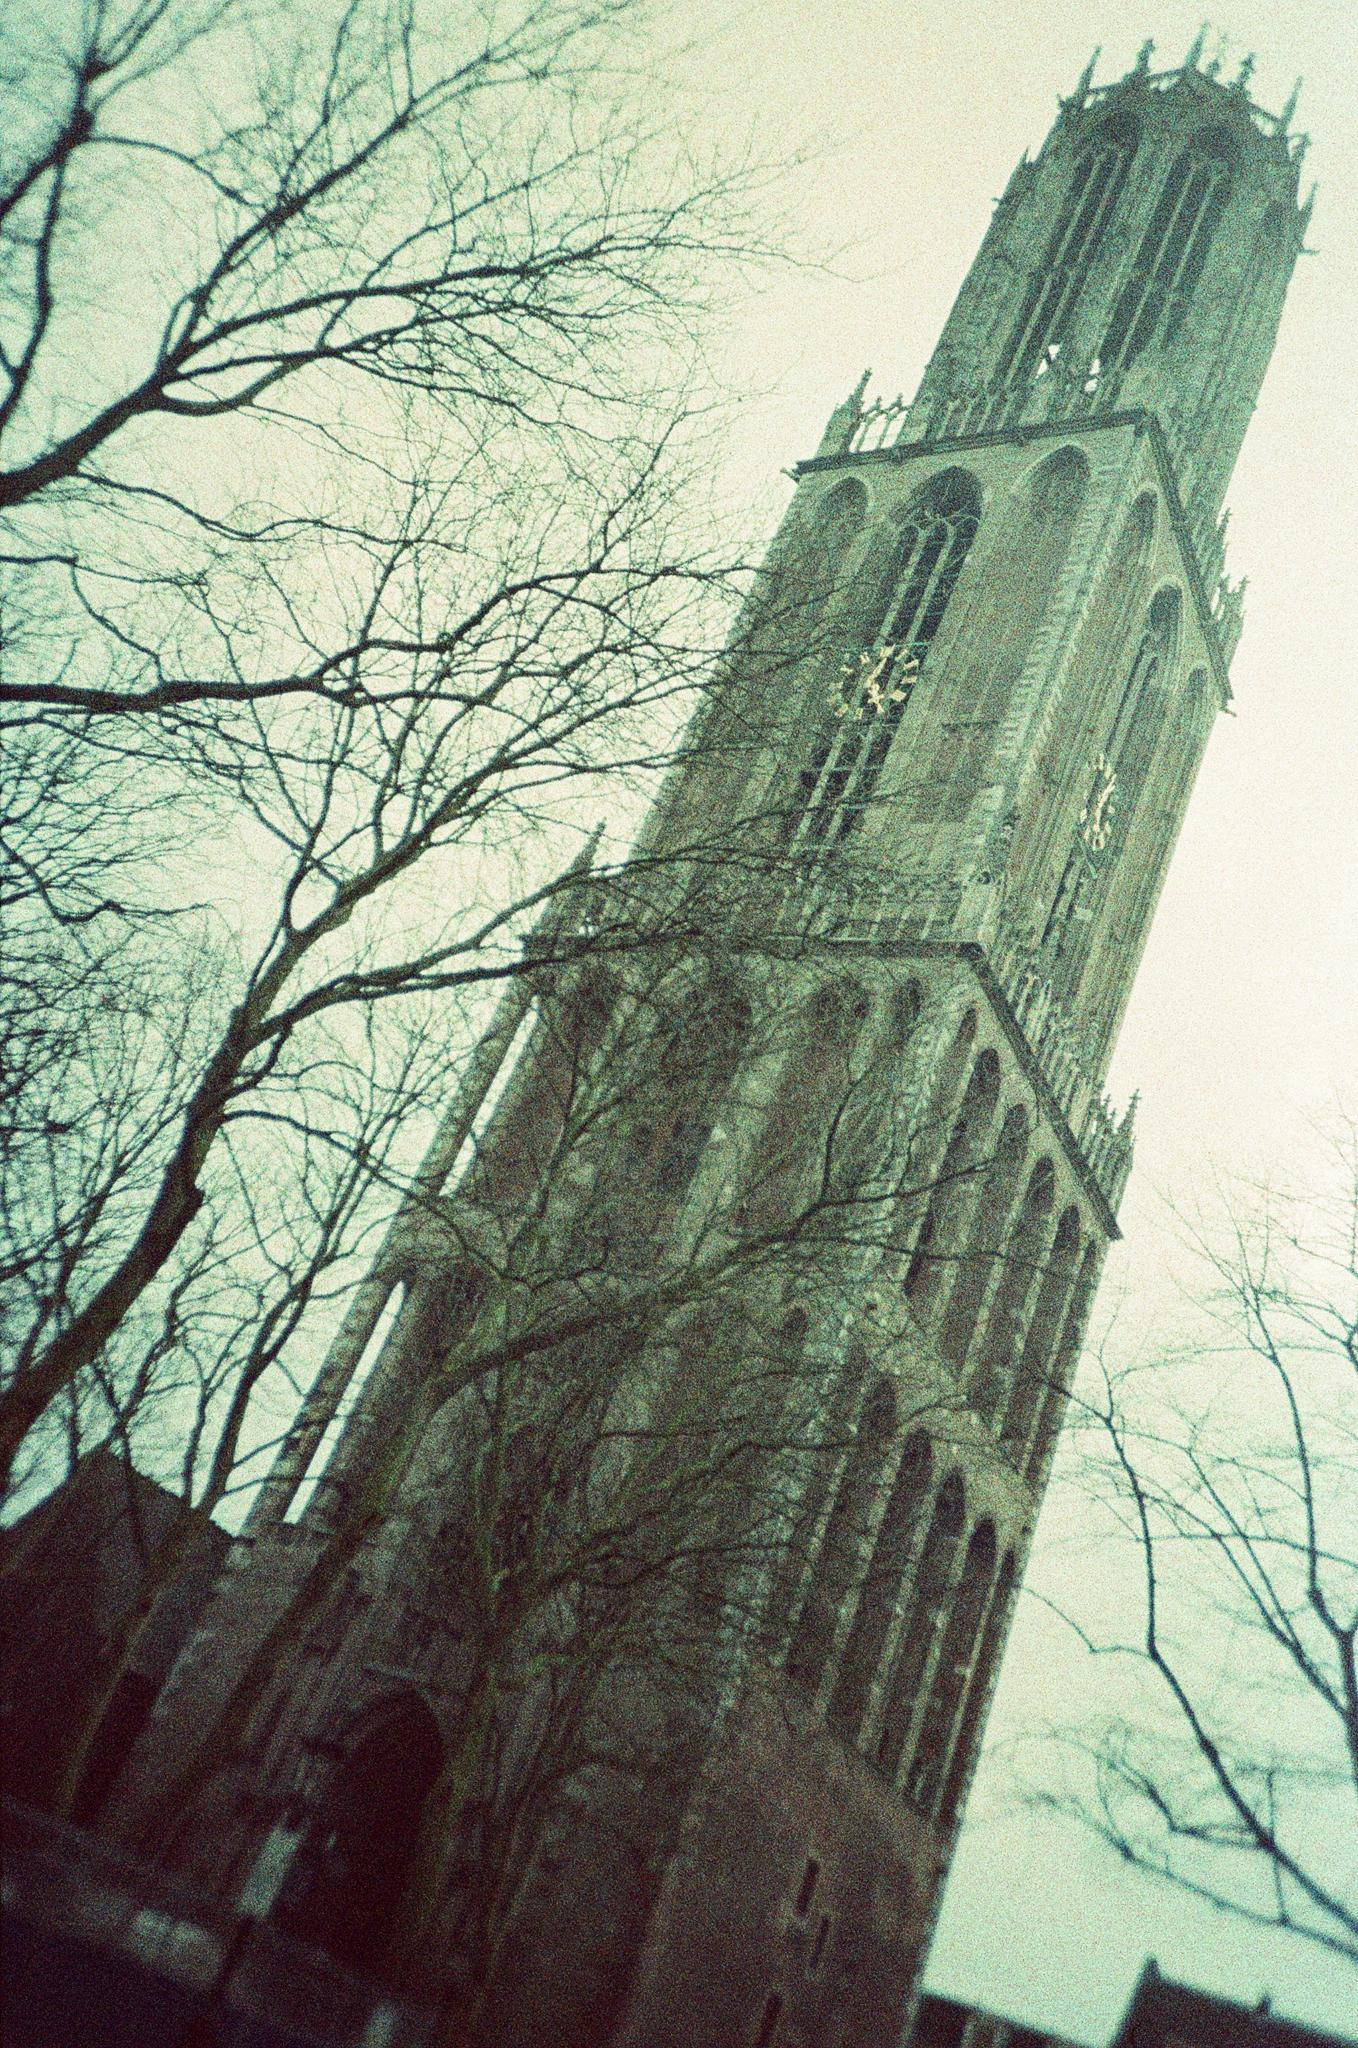 St. Martin's Cathedral, Utrecht by phoenix1206